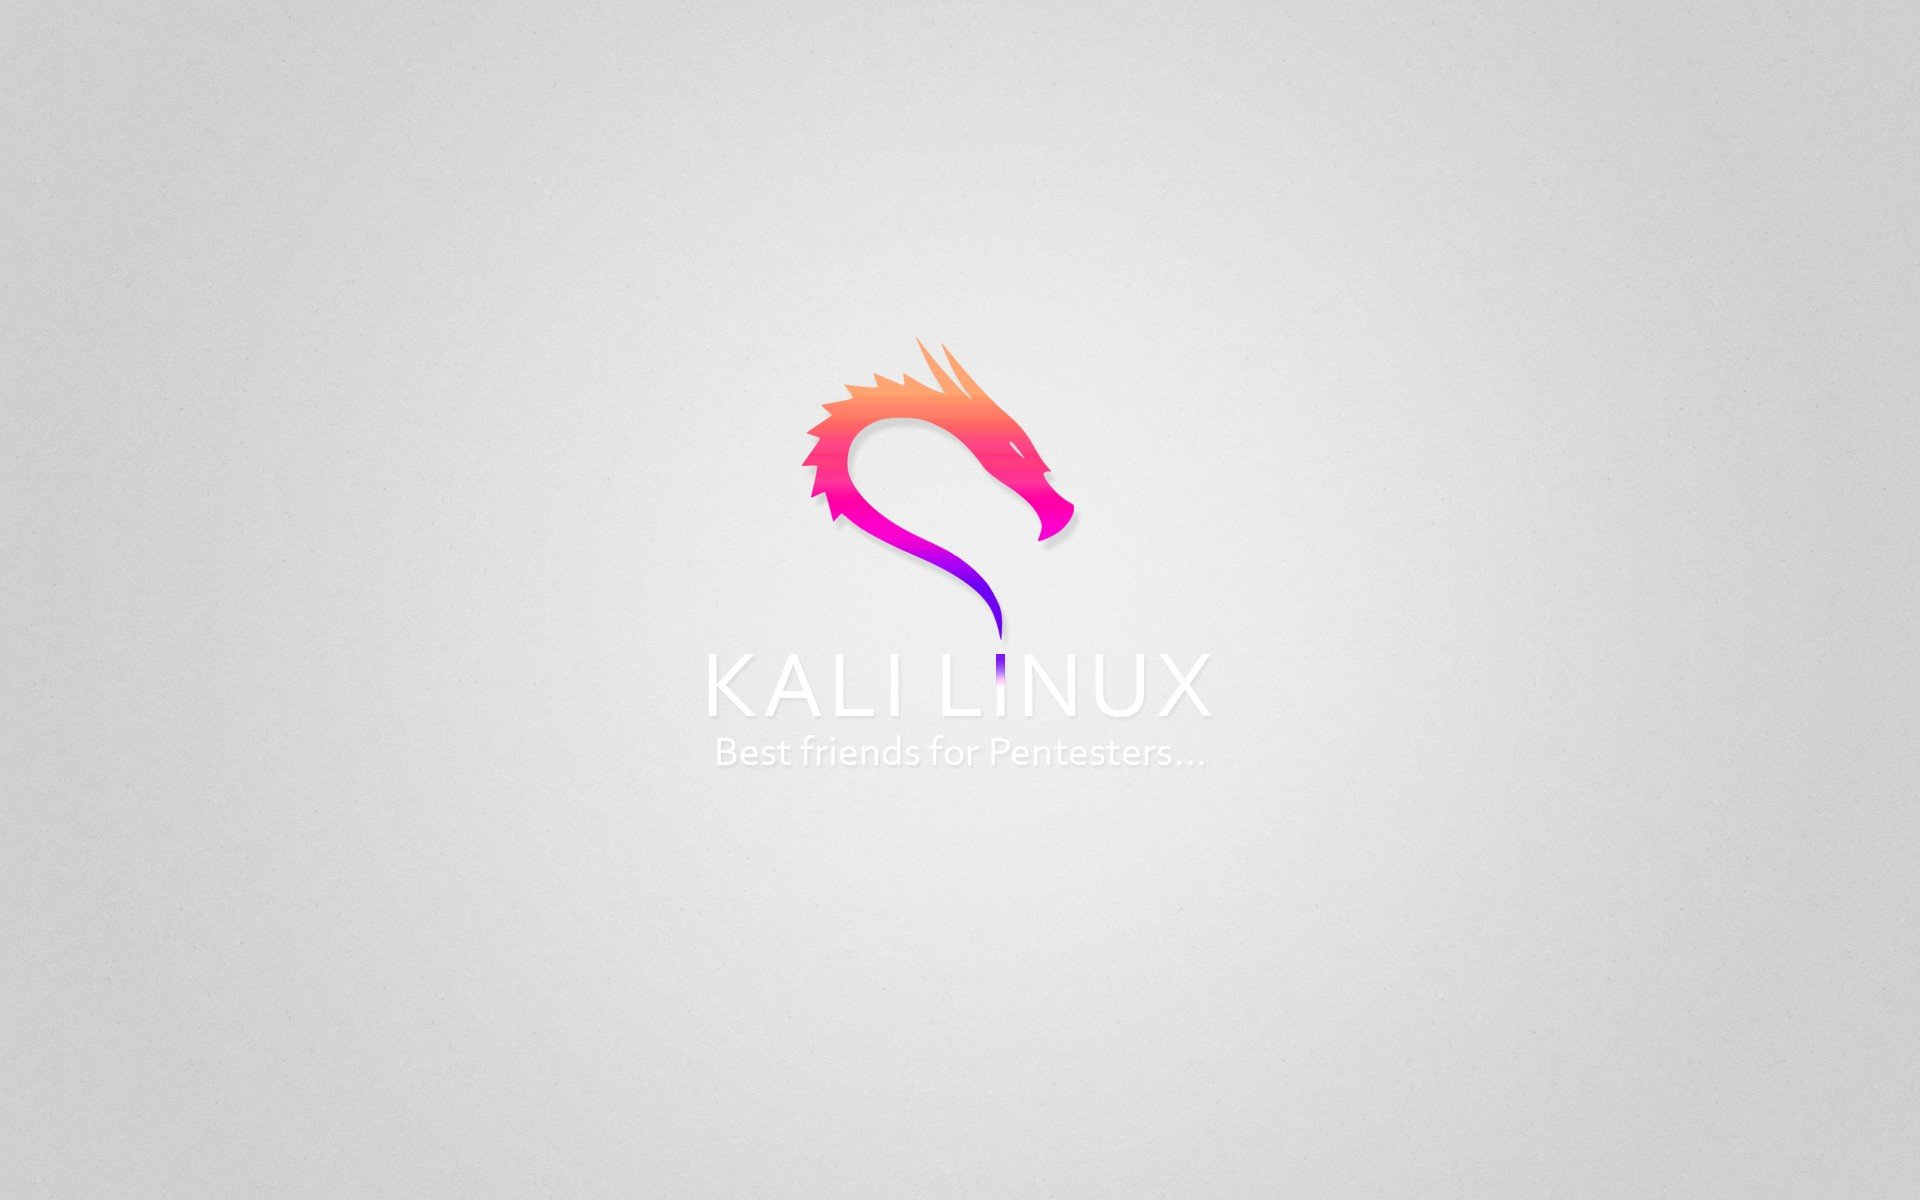 Linux Wallpaper Girls Kali Linux Linux Computer Simple Typography Logo